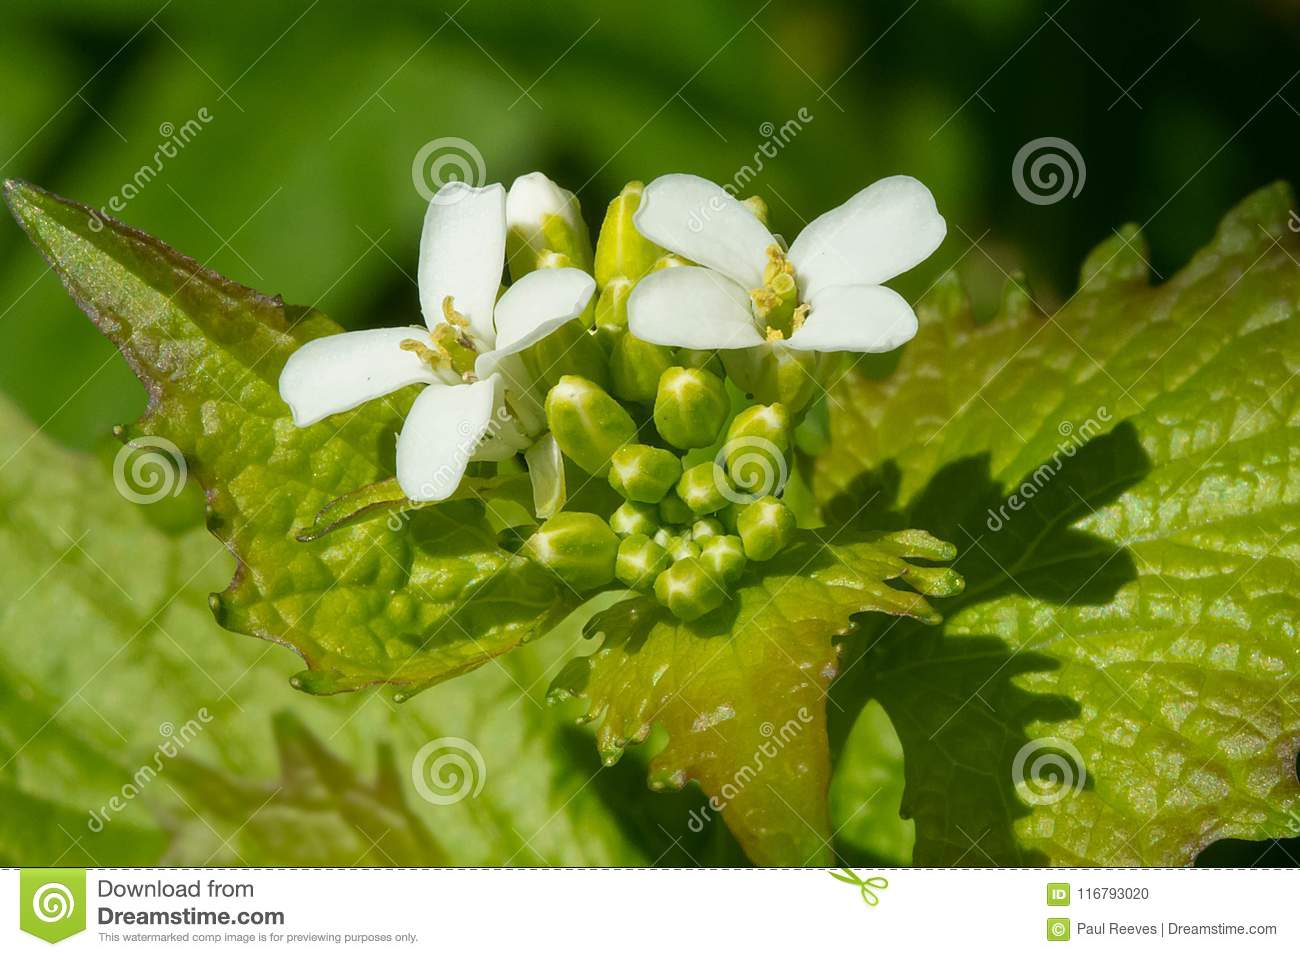 Download Garlic Mustard - Vlliaria Petiolata Stock Photo - Image of outside, petiolata: 116793020